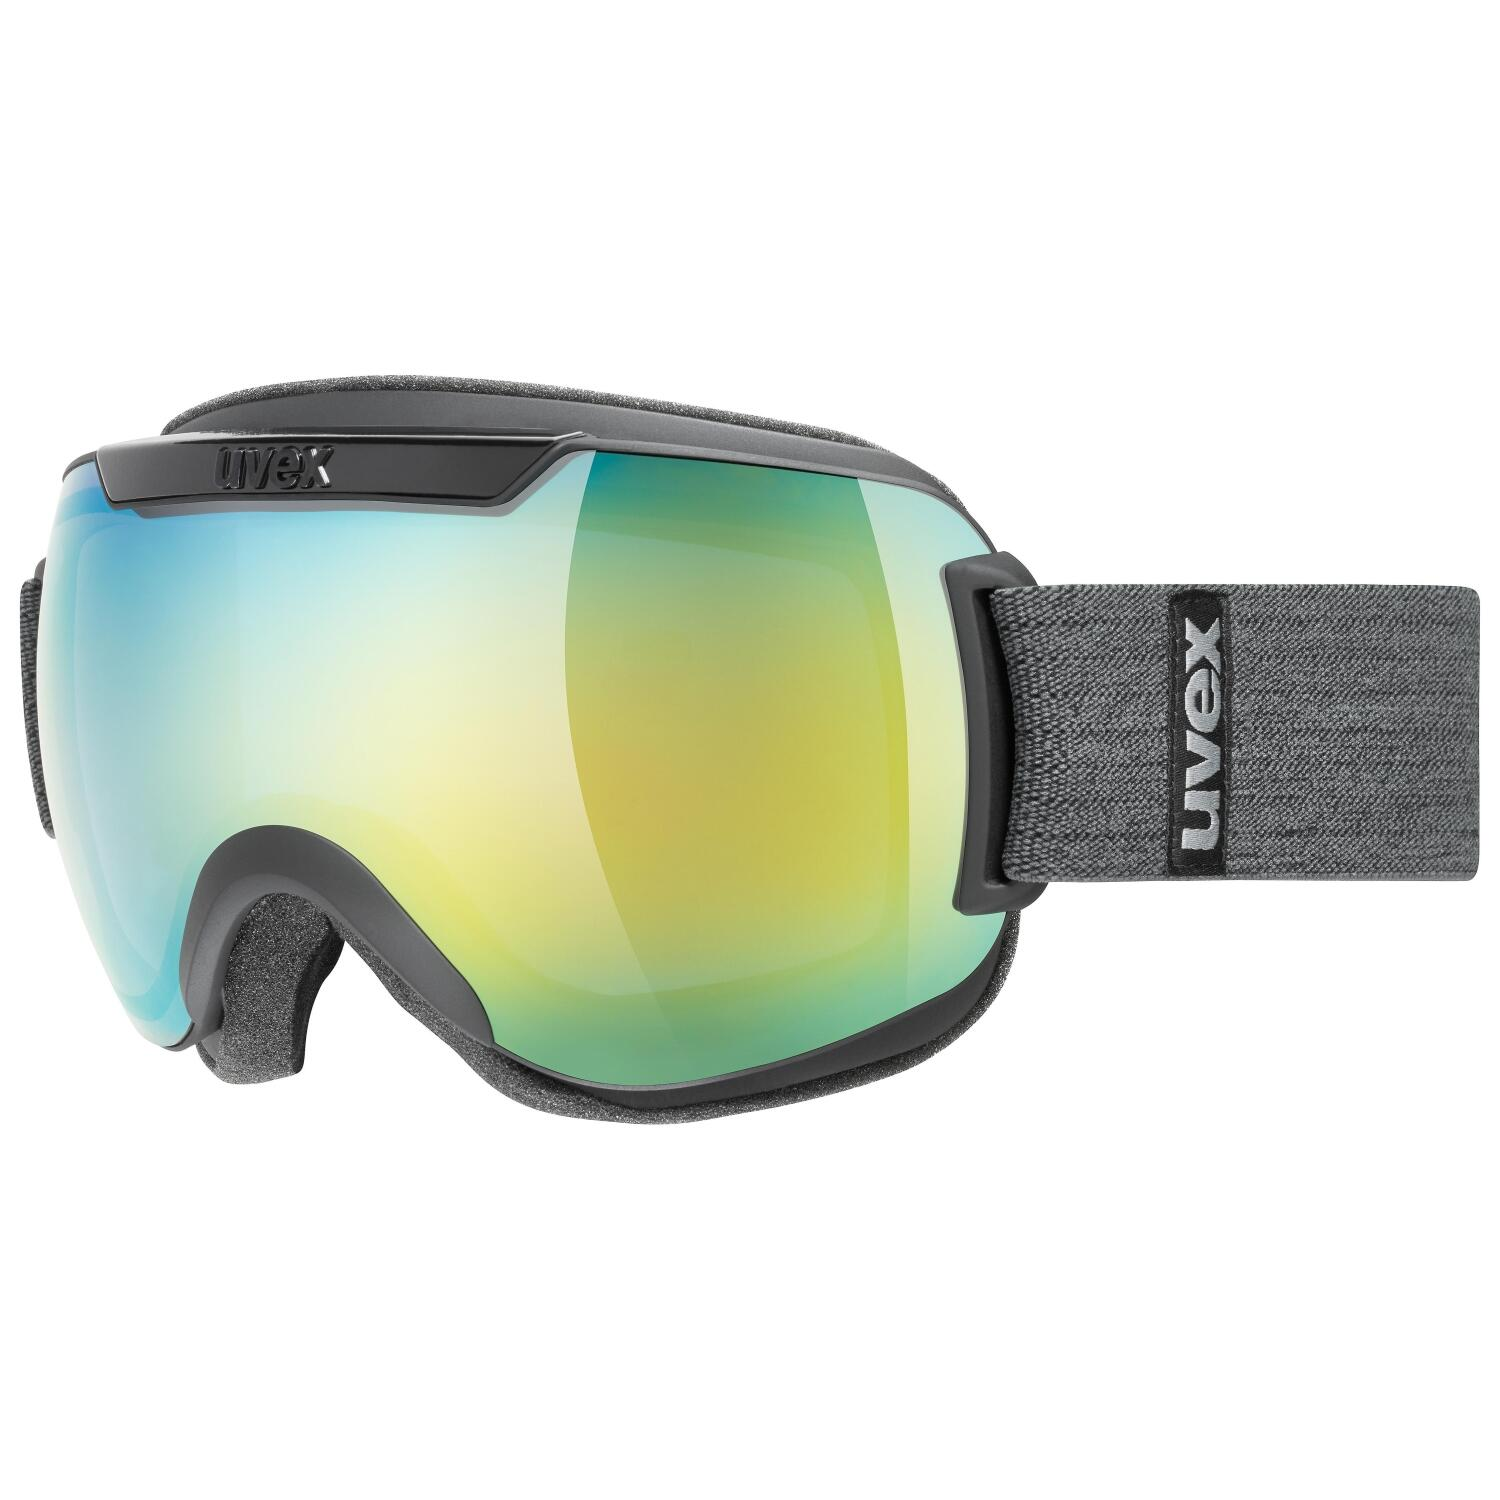 uvex-skibrille-downhill-2000-full-mirror-farbe-2530-black-mat-mirror-gold-blue-s2-